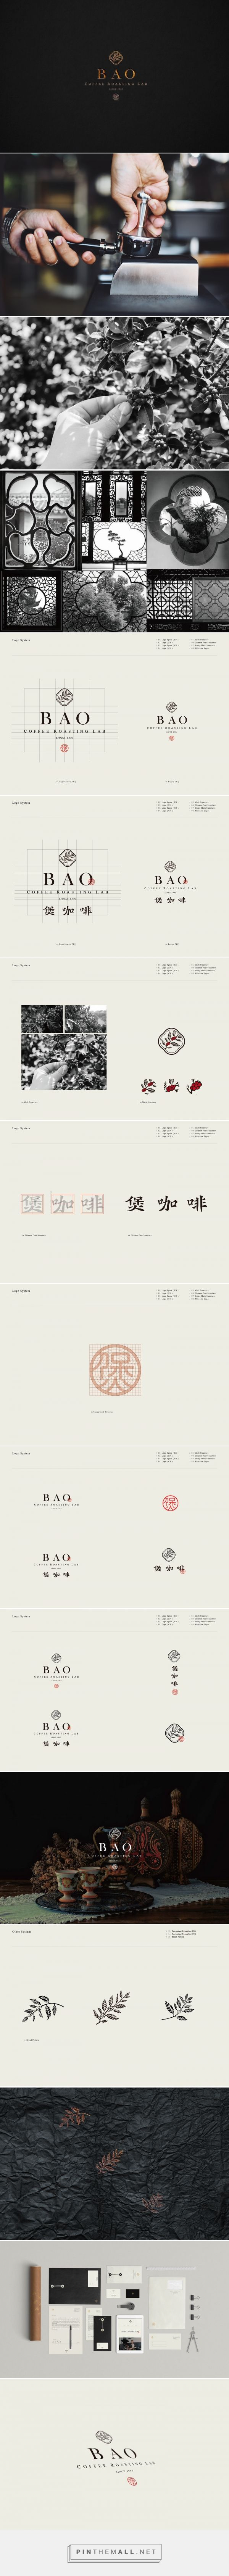 BAO Coffee Roasting Branding